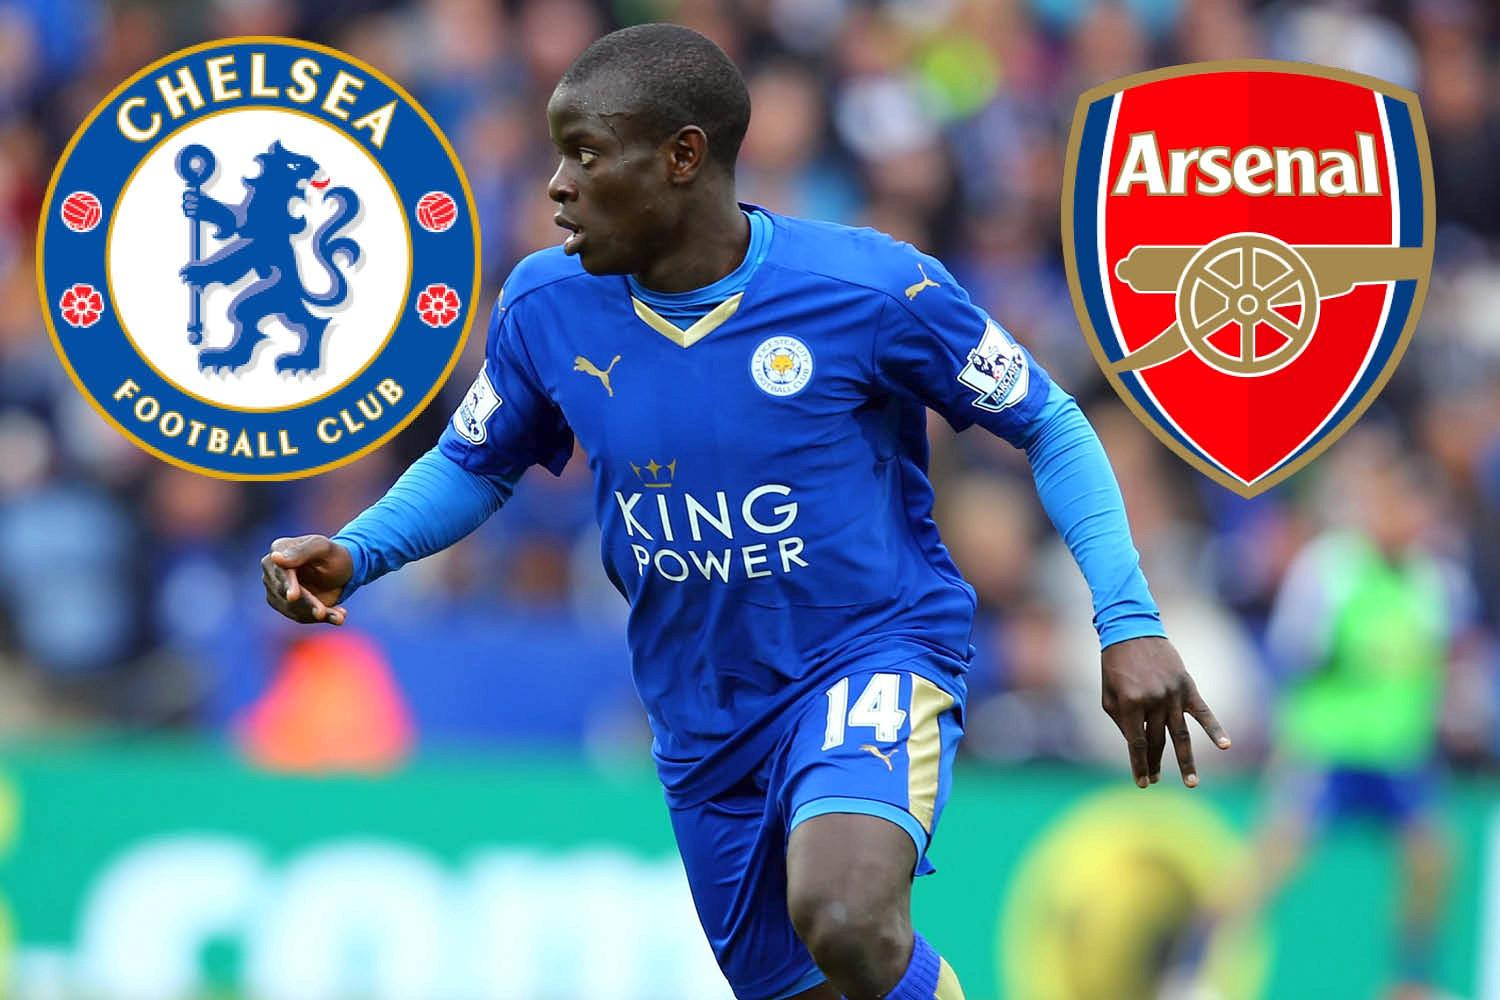 Why did Arsenal fail to sign N Golo Kante